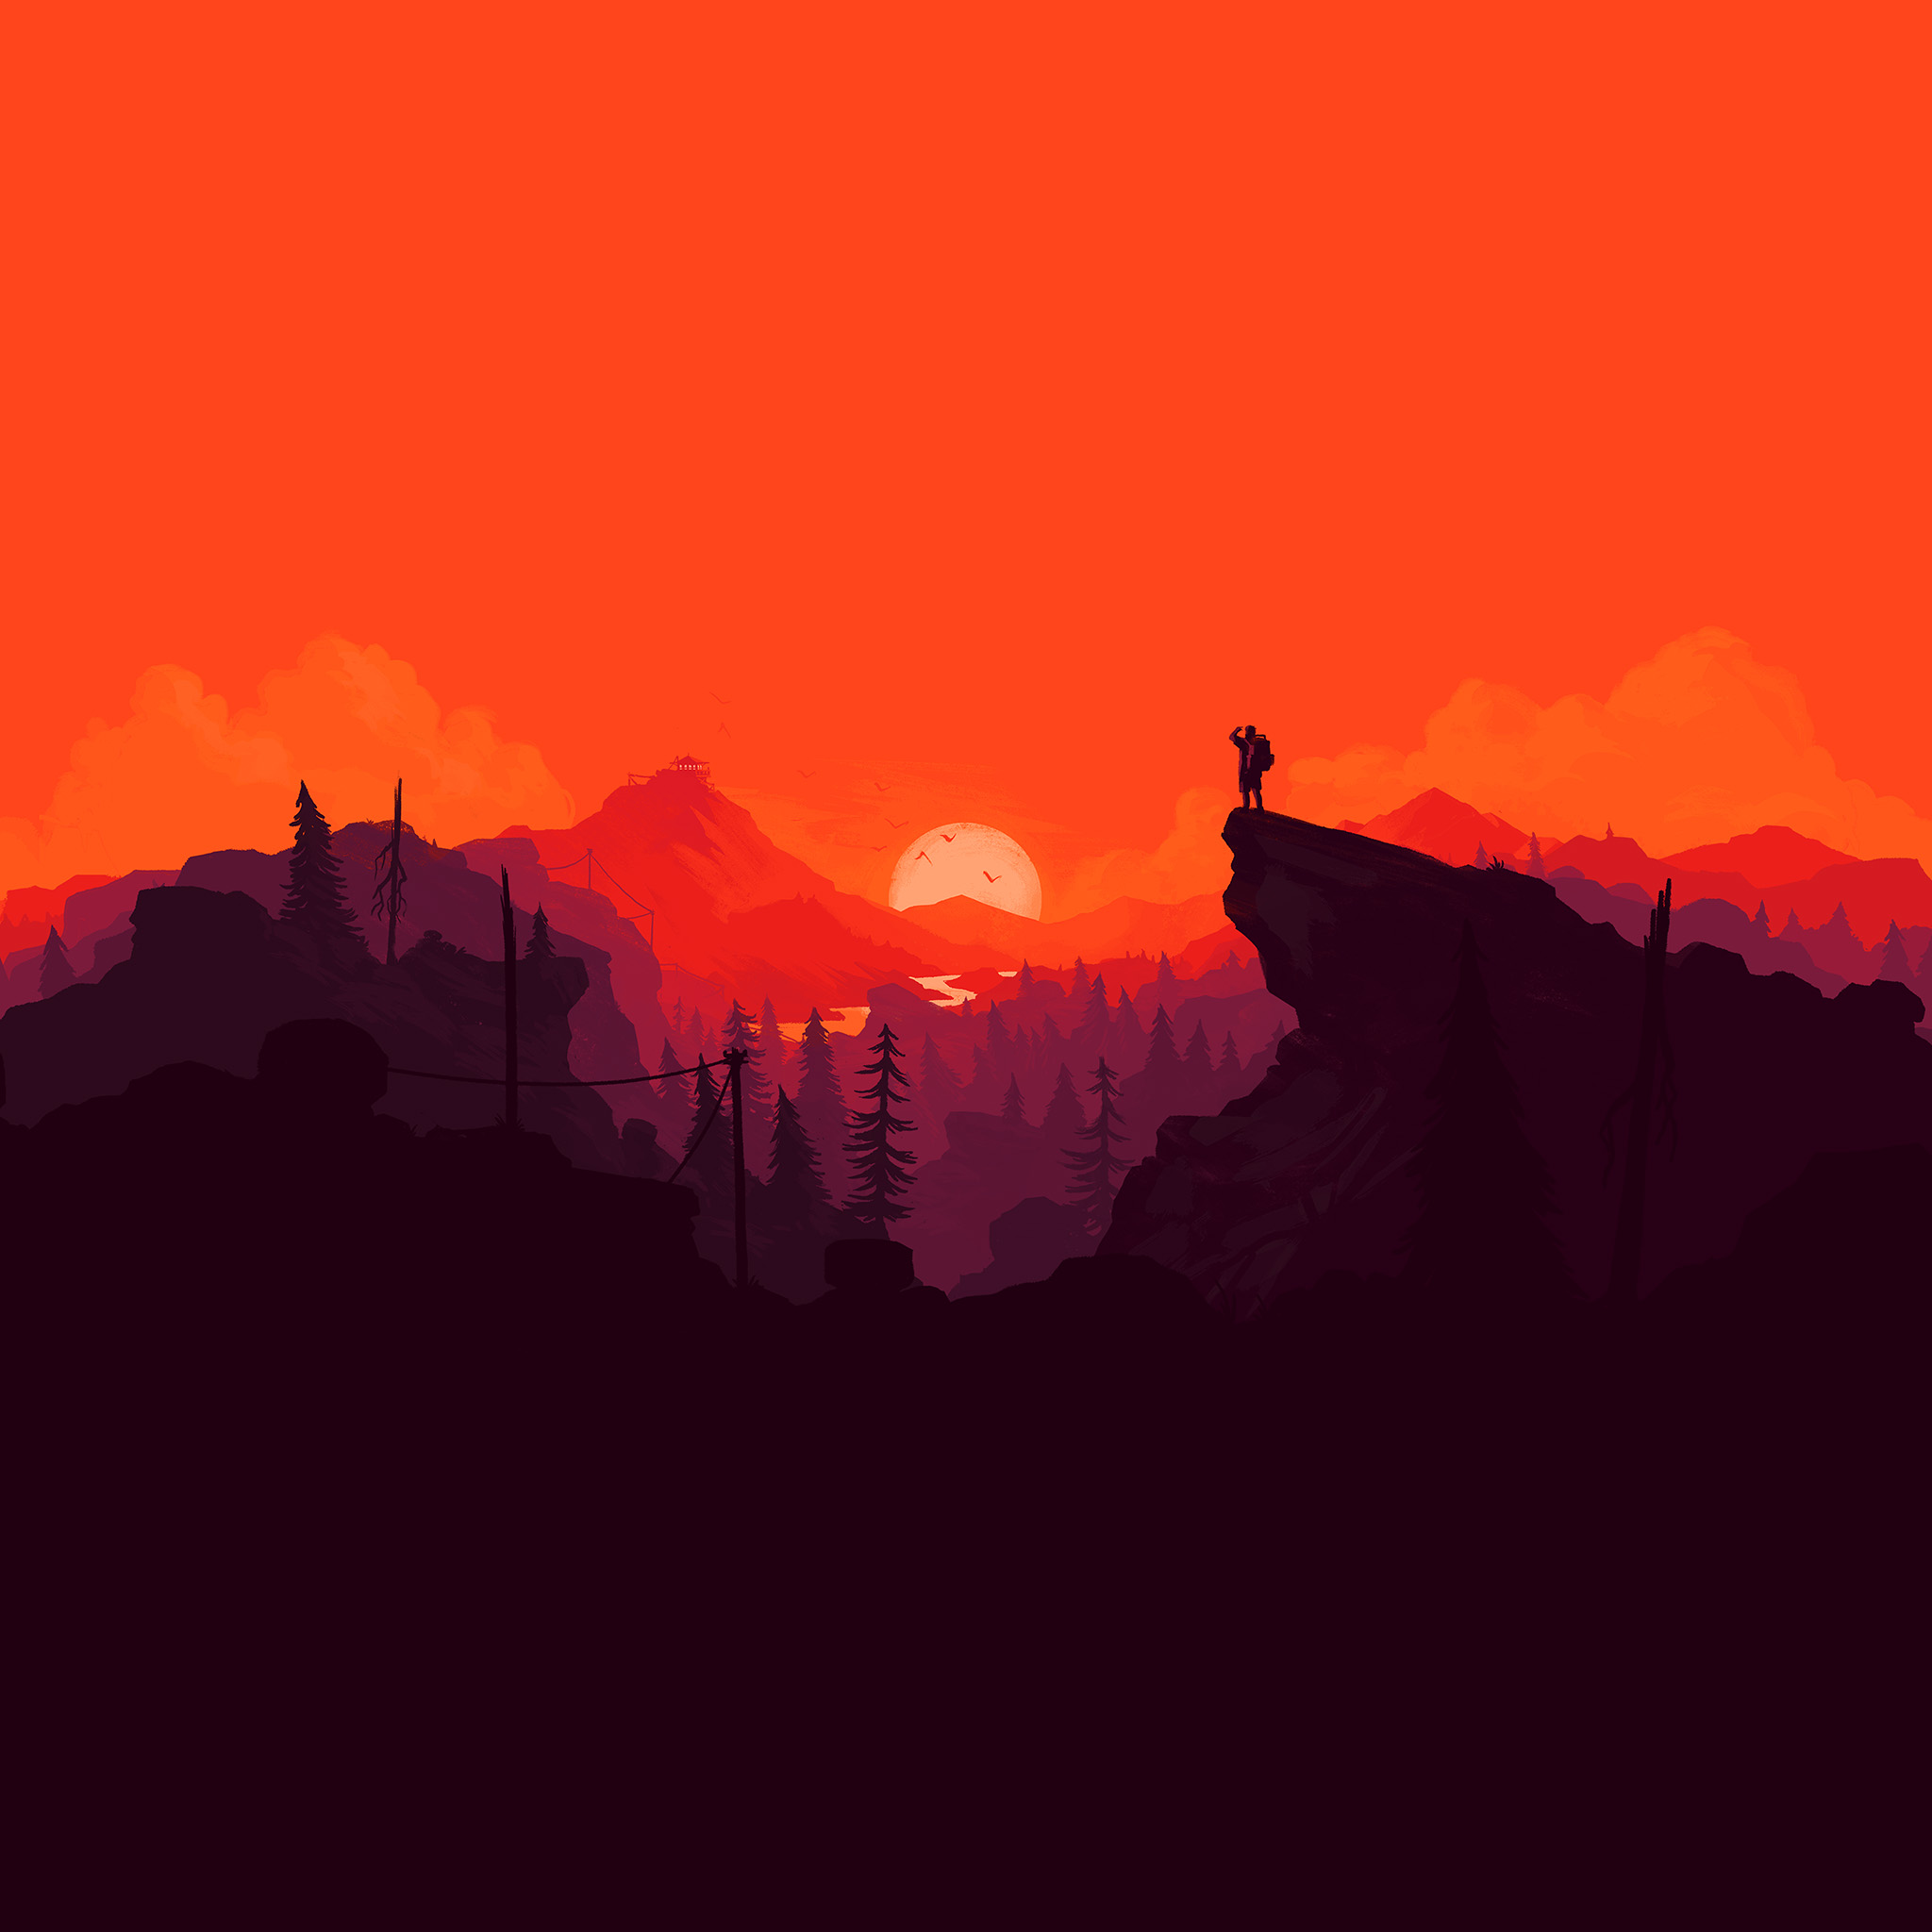 Au35 nature sunset simple minimal illustration art red - 2d nature wallpapers ...